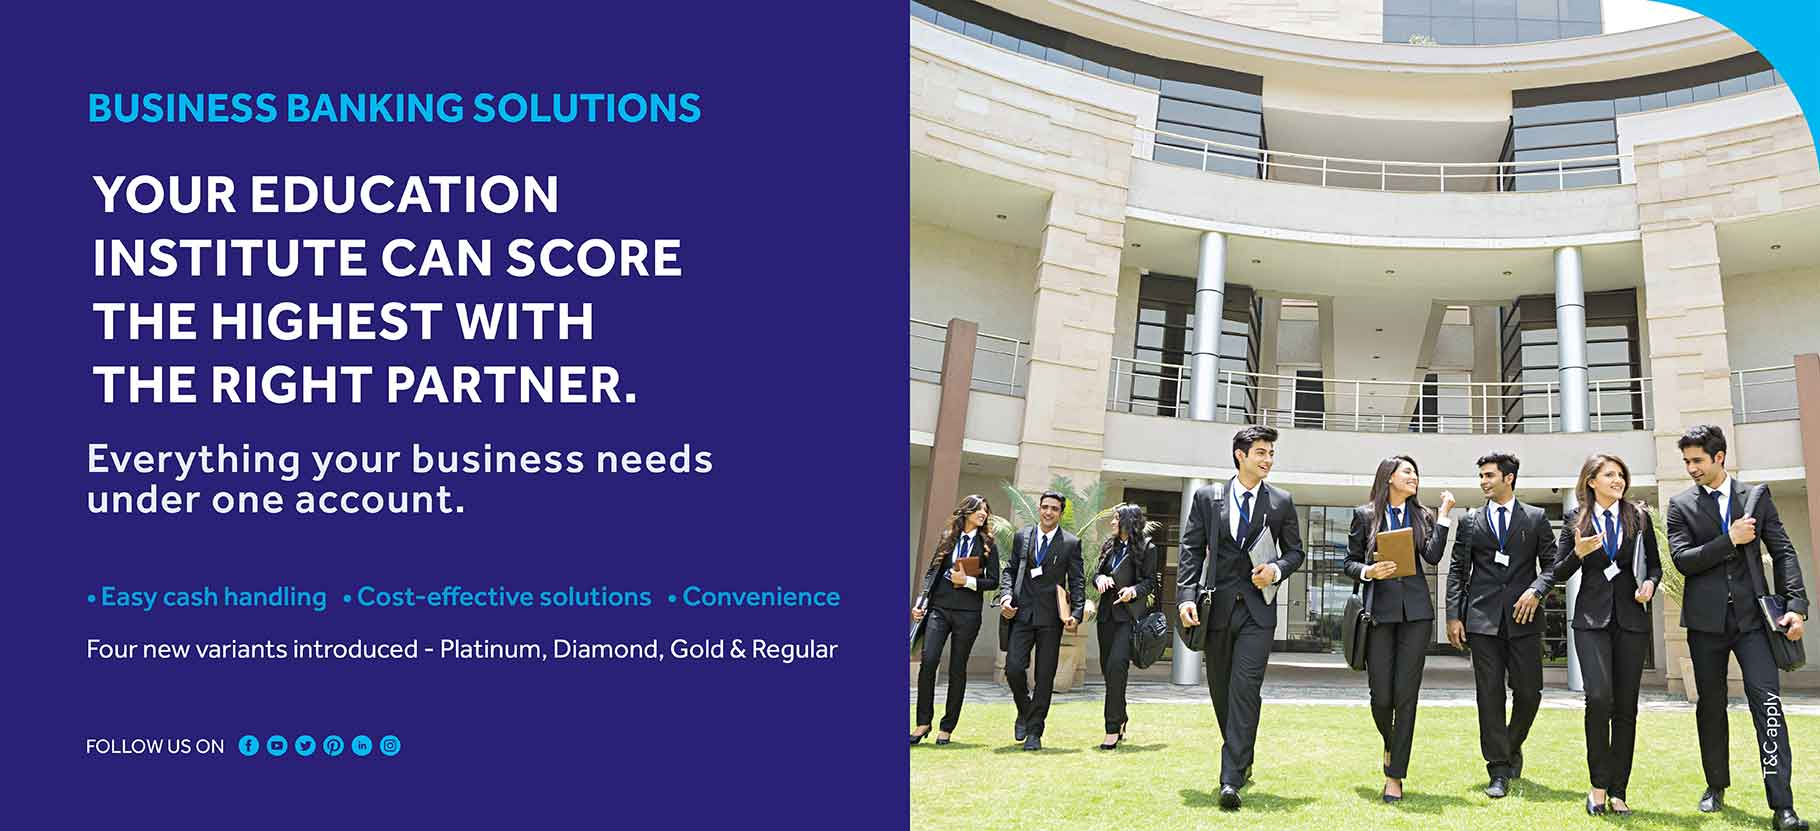 Your Education institute can score the highest with the right partner